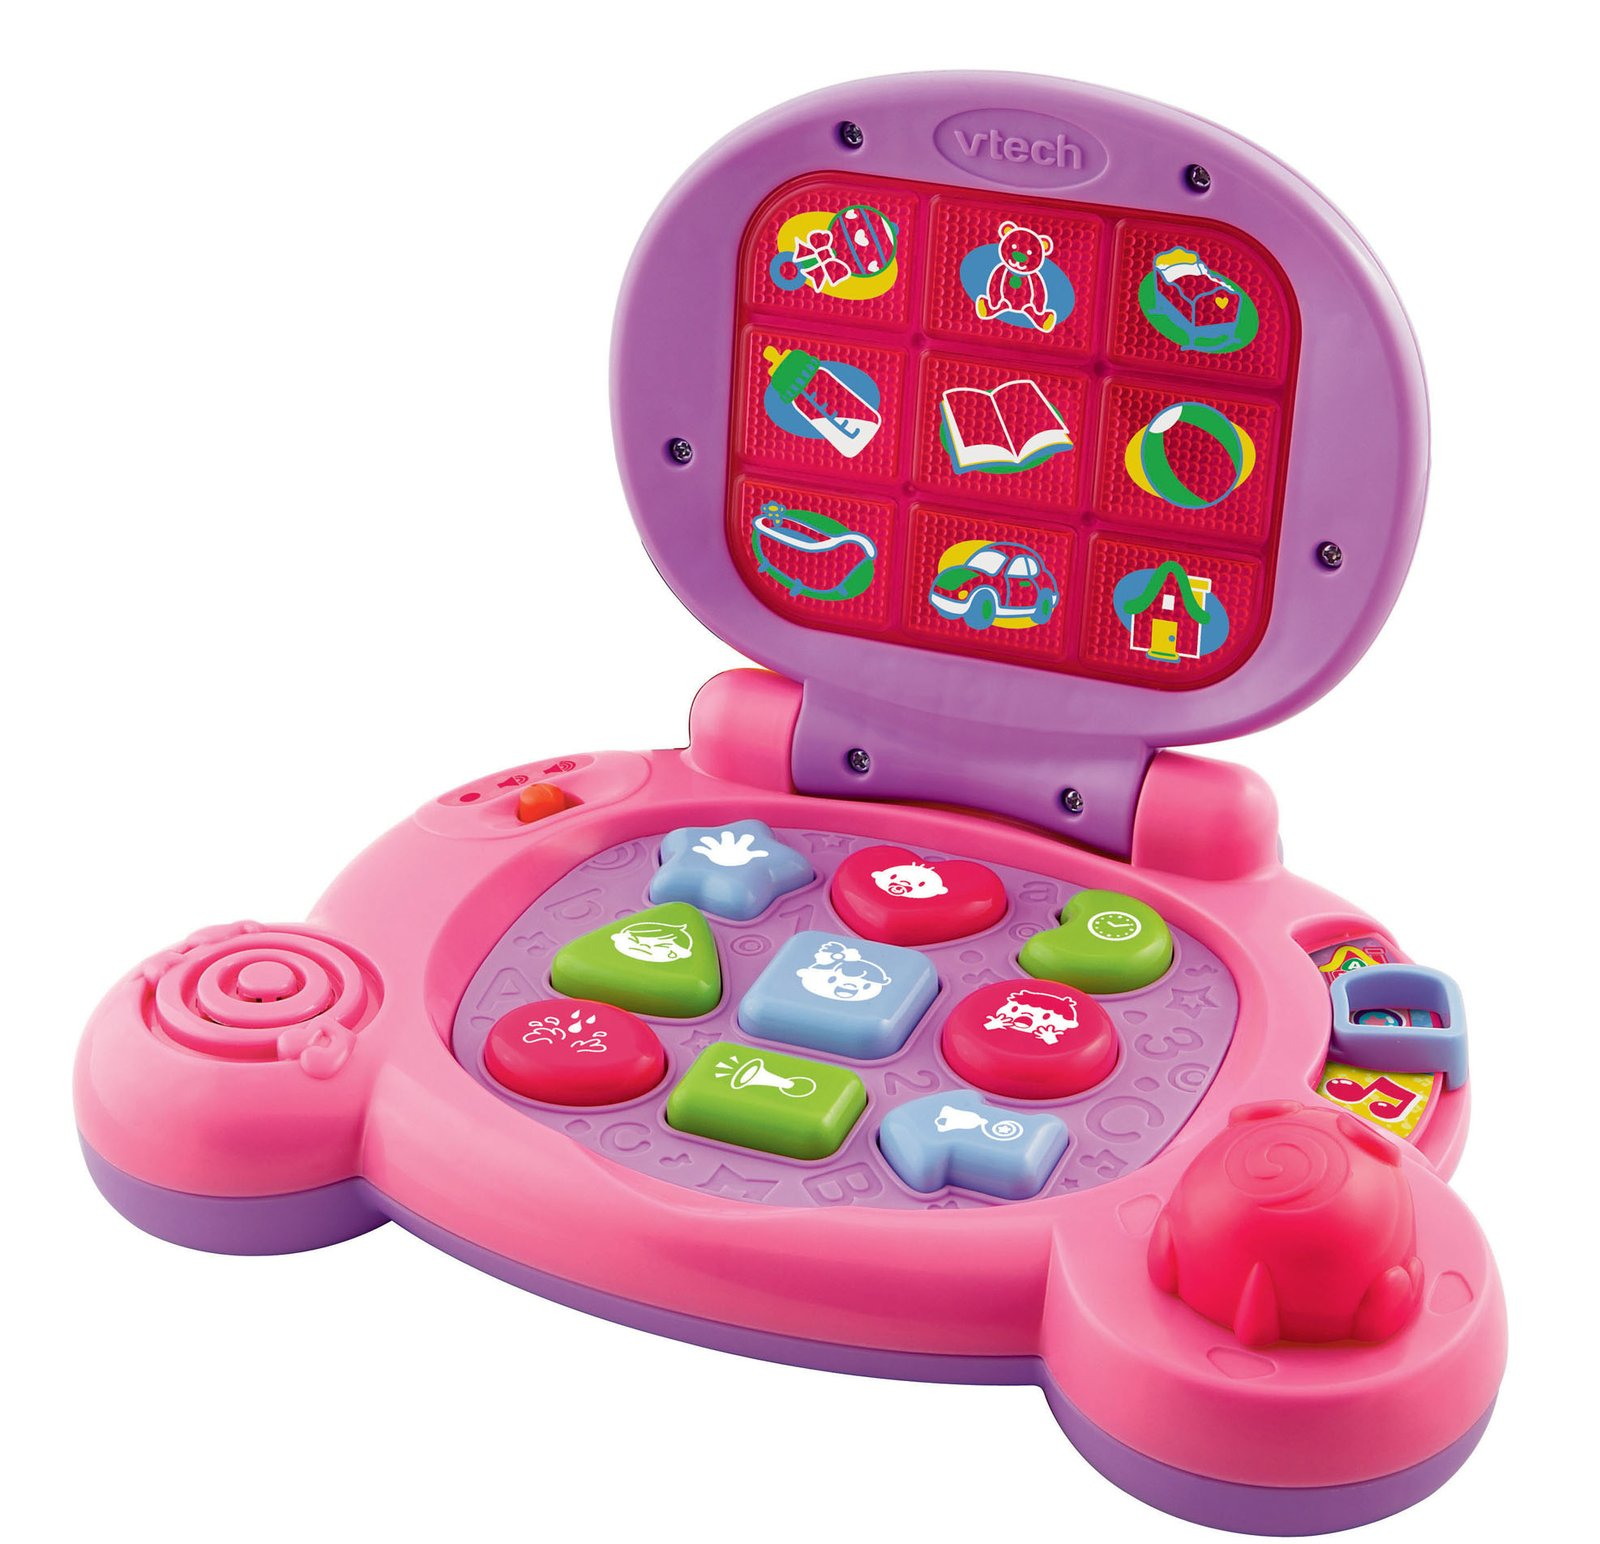 Vtech Baby S Learning Laptop Gift Ideas